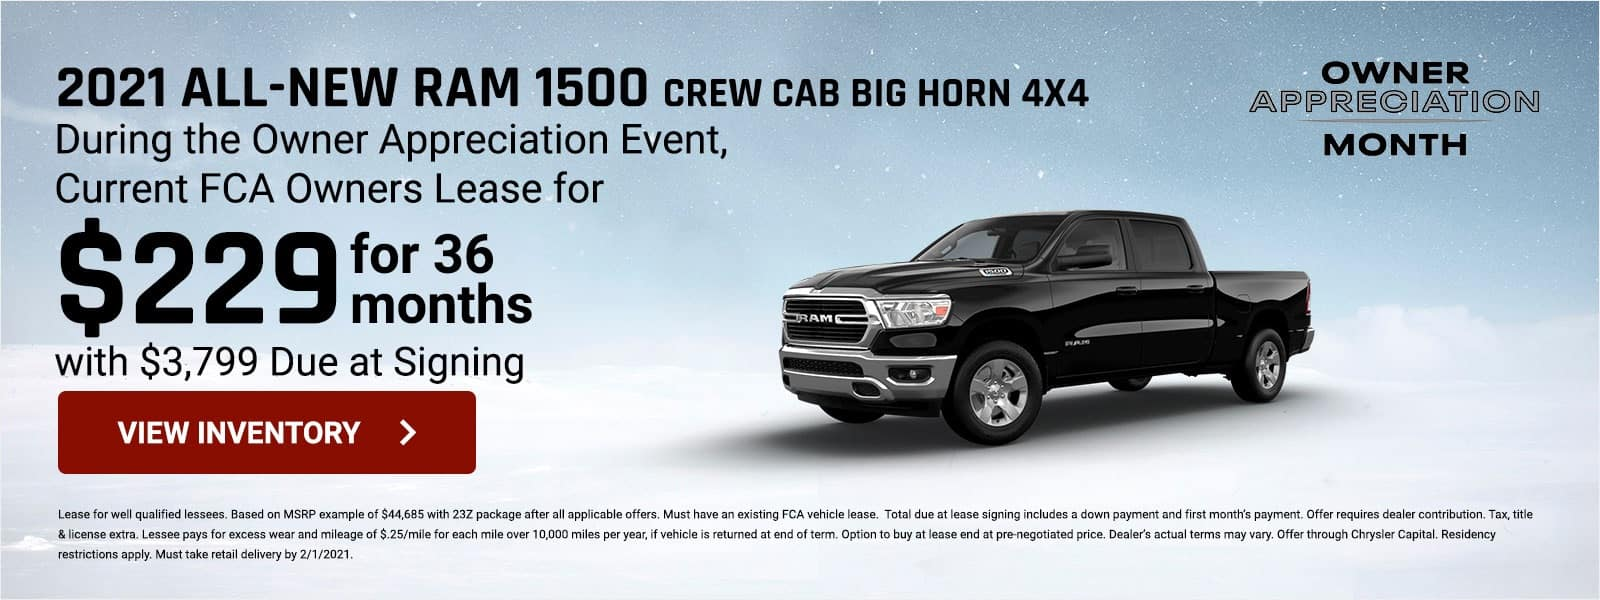 Ram-1500-Crew-Cab-Big-Horn-4×4-LEASE (PA,NJ,DE ONLY) (1)